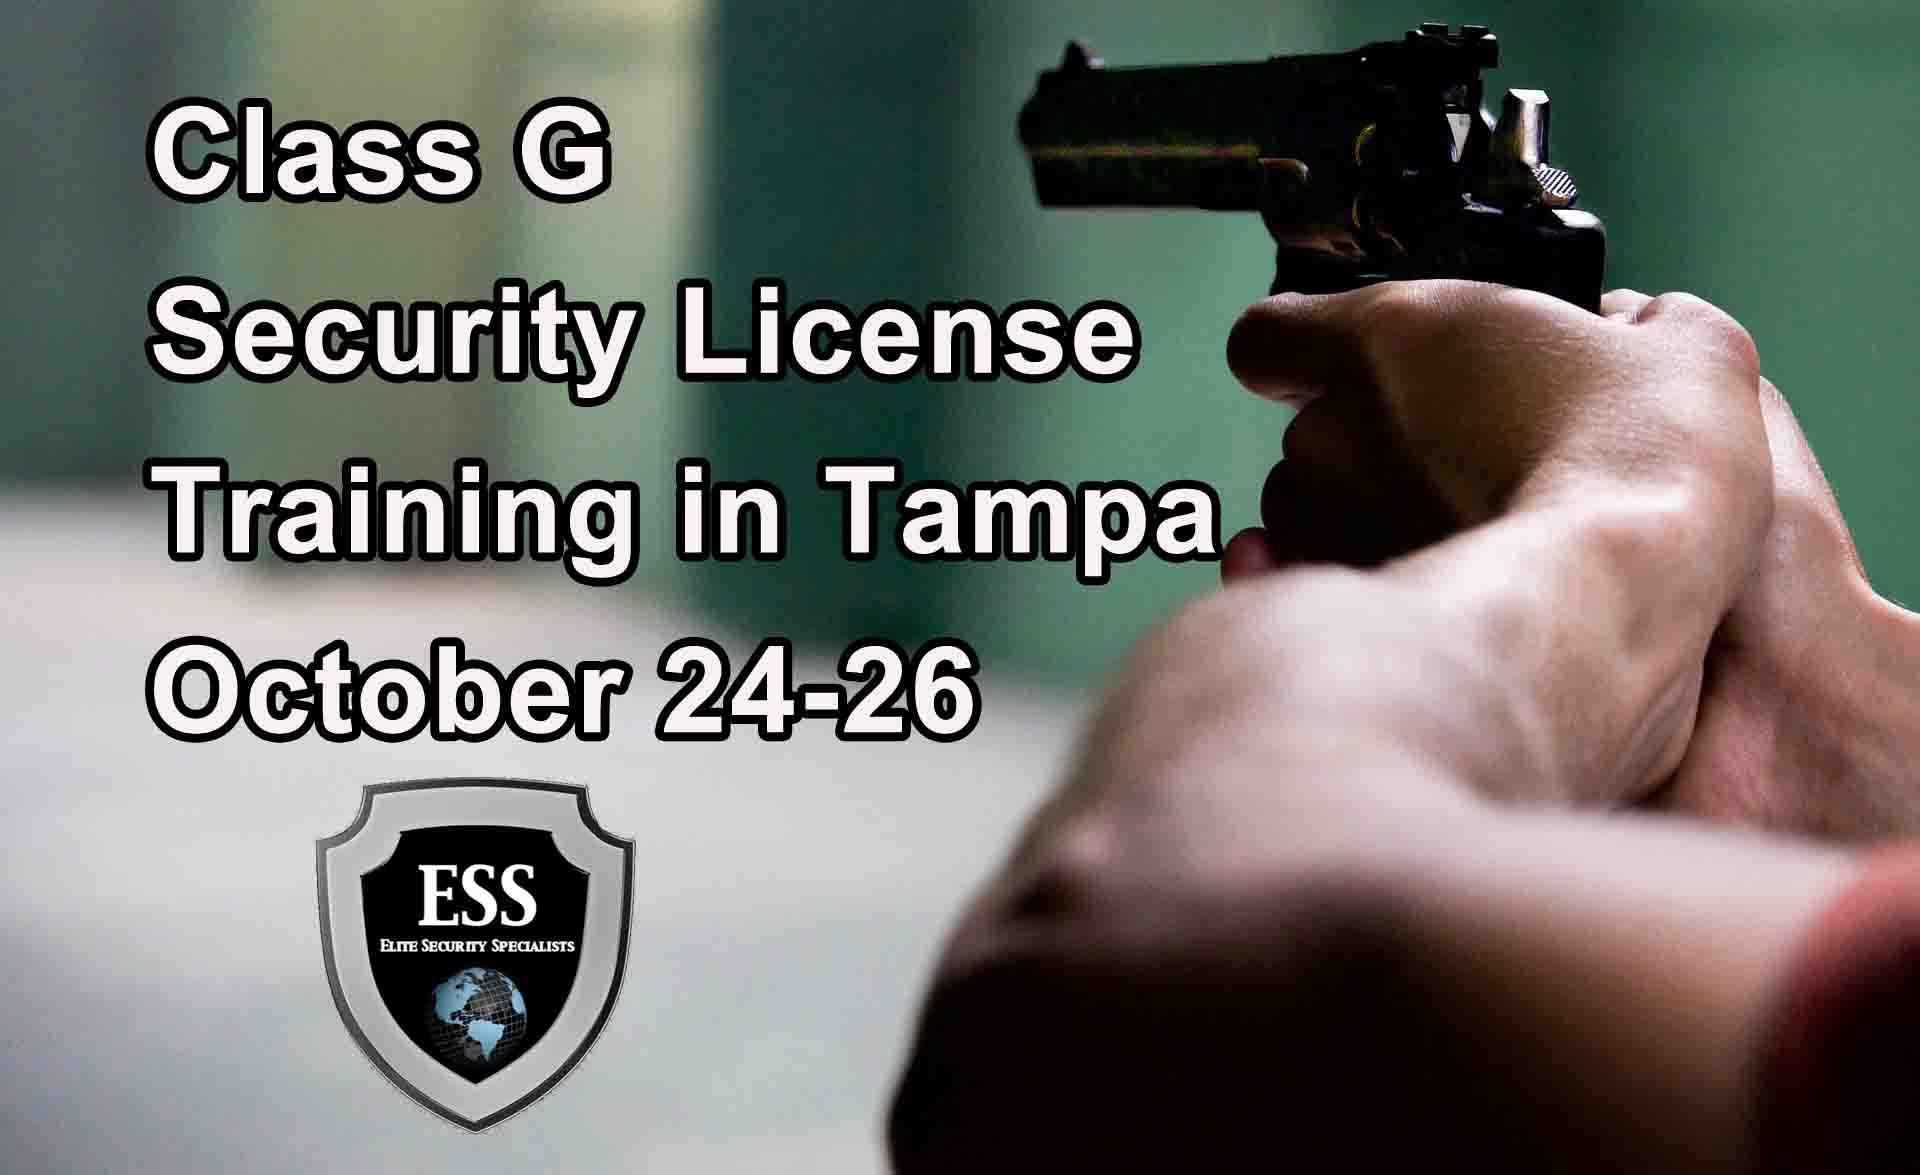 Class G Security License Training in Tampa OCTOBER